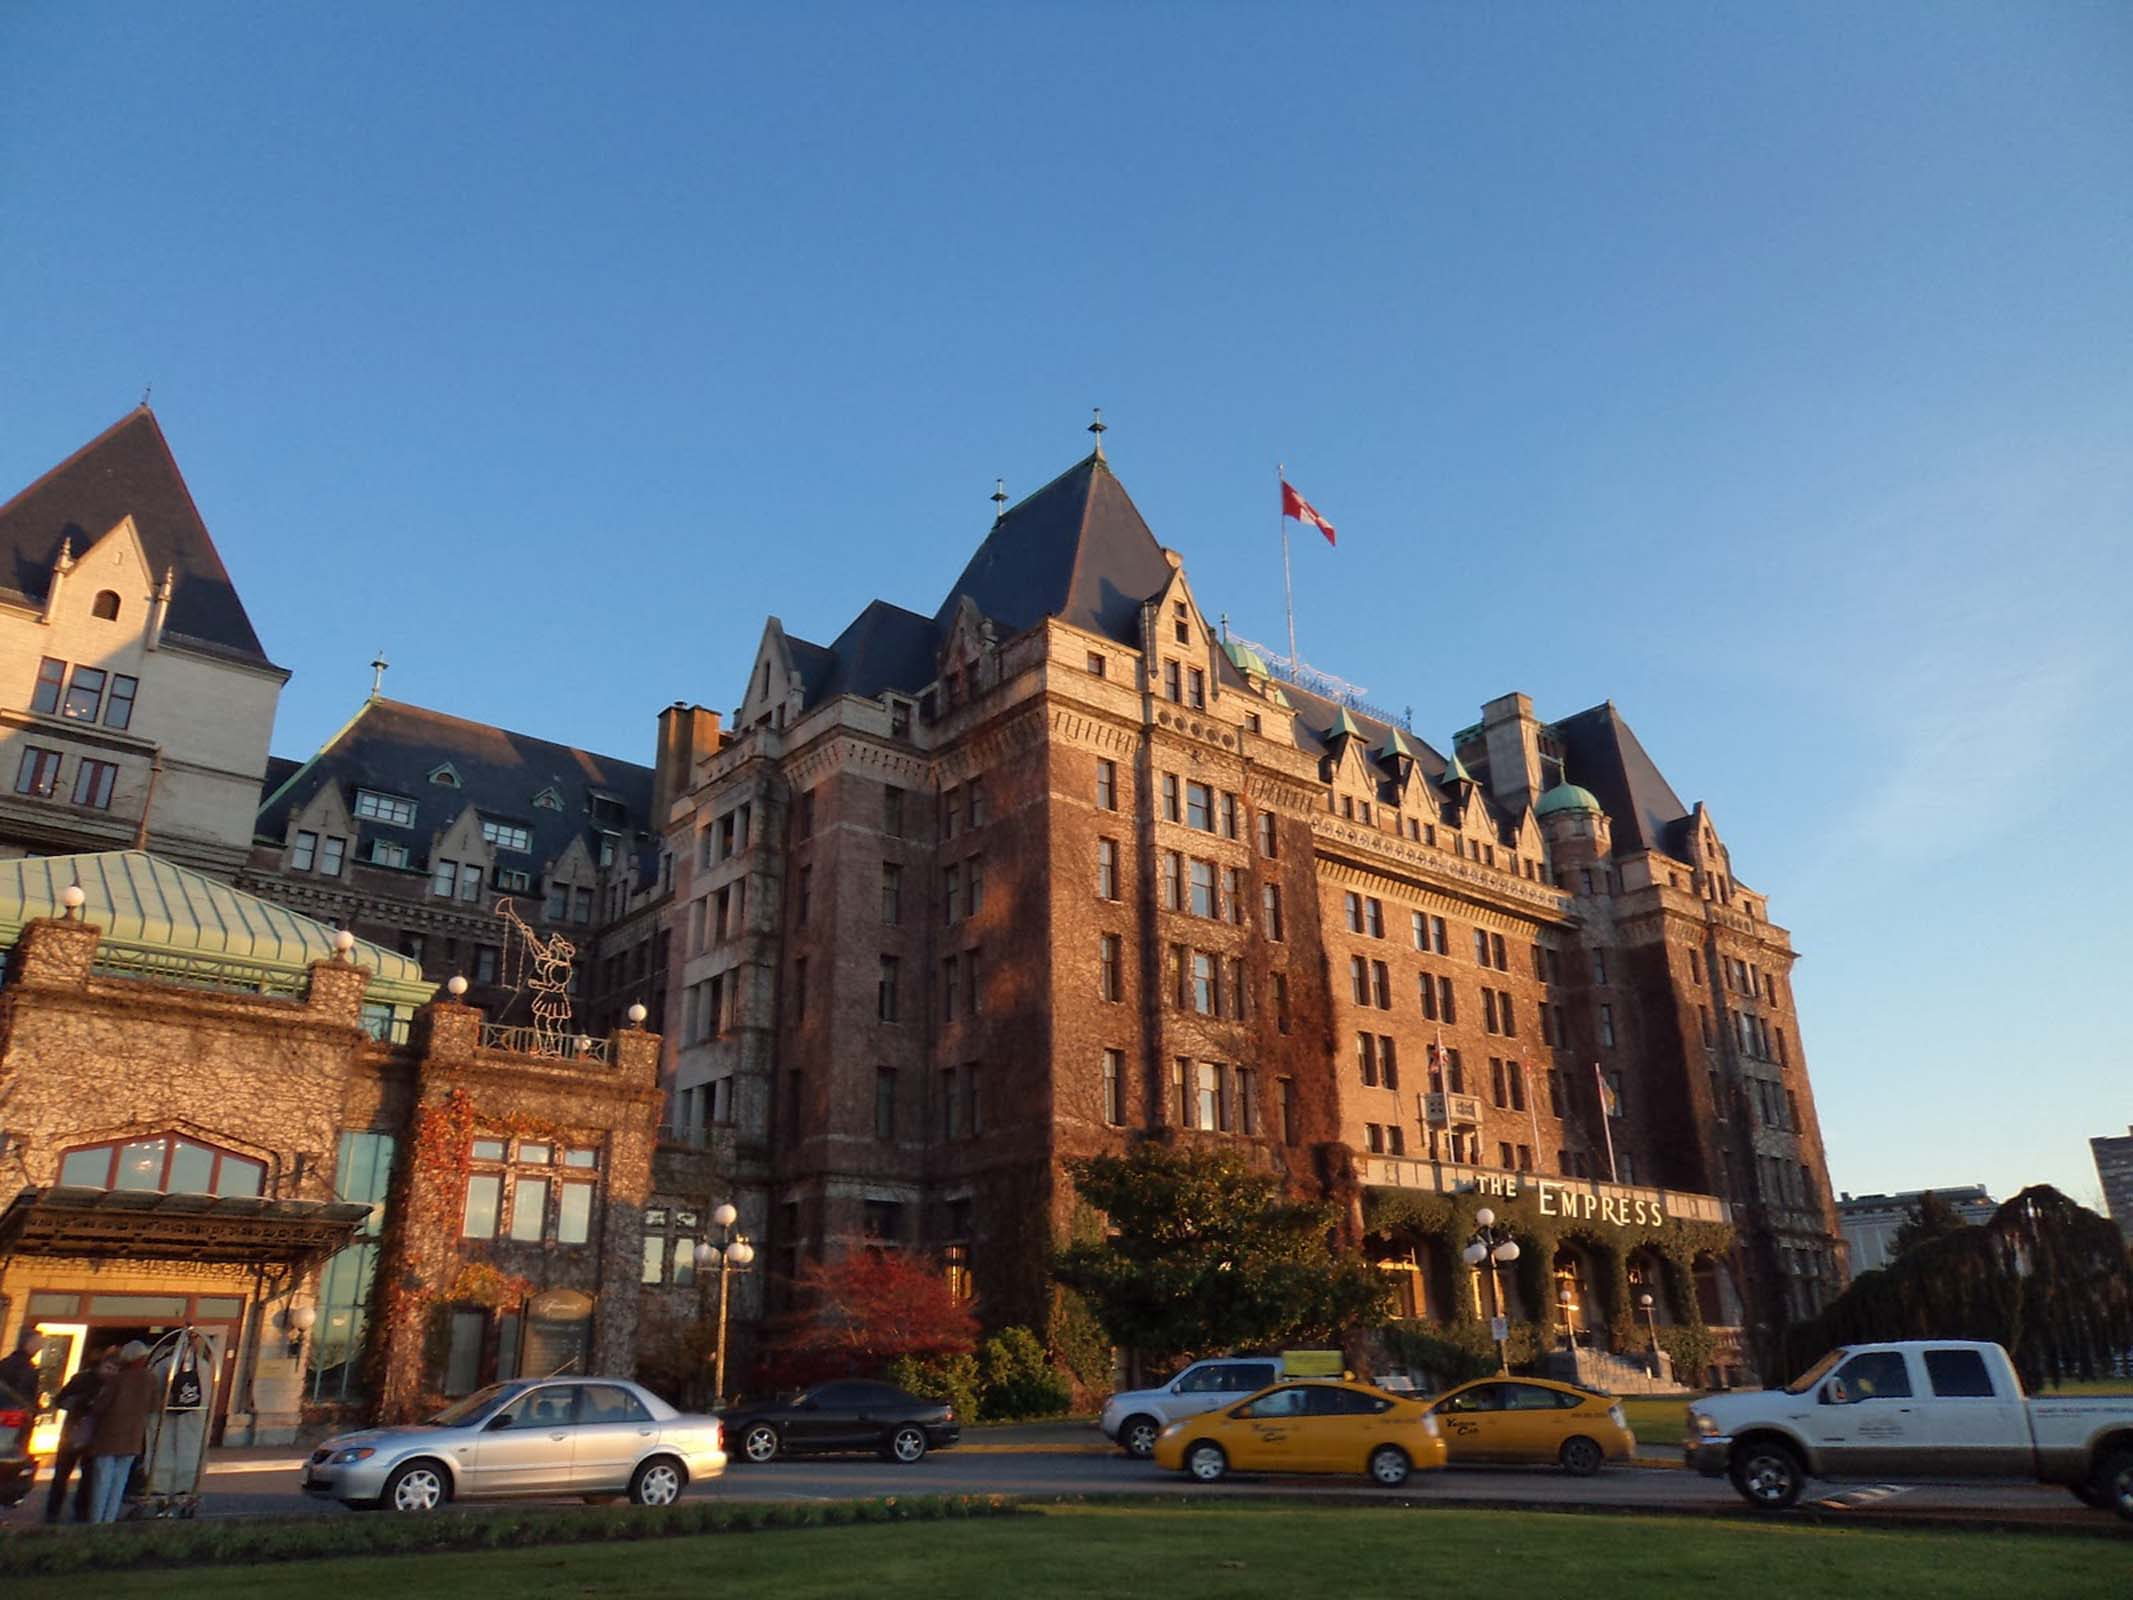 A regal looking hotel with Canadian flag and many taxis outside